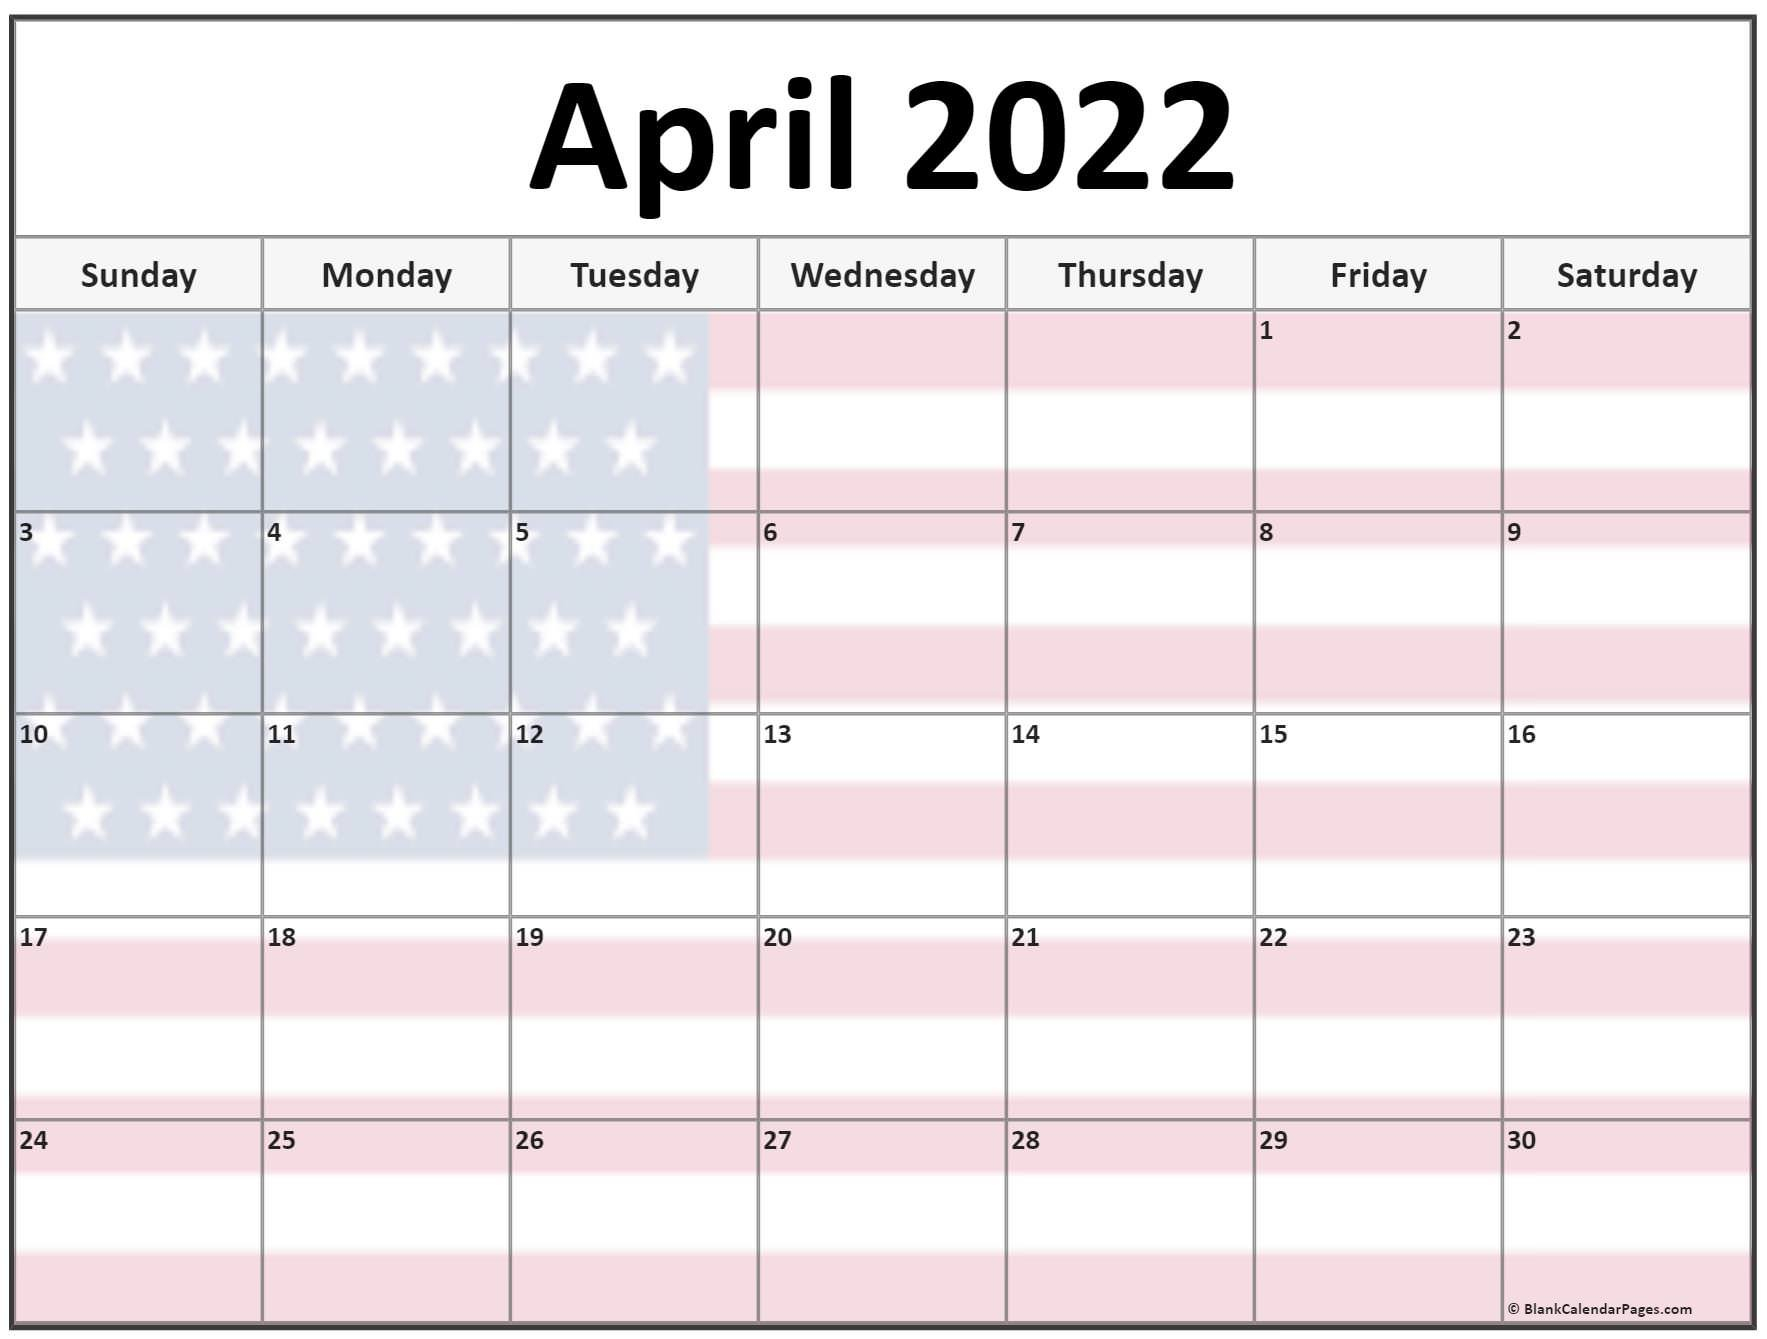 Collection Of April 2022 Photo Calendars With Image Filters. with regard to Printable April 2022 Calendar Template Free Image